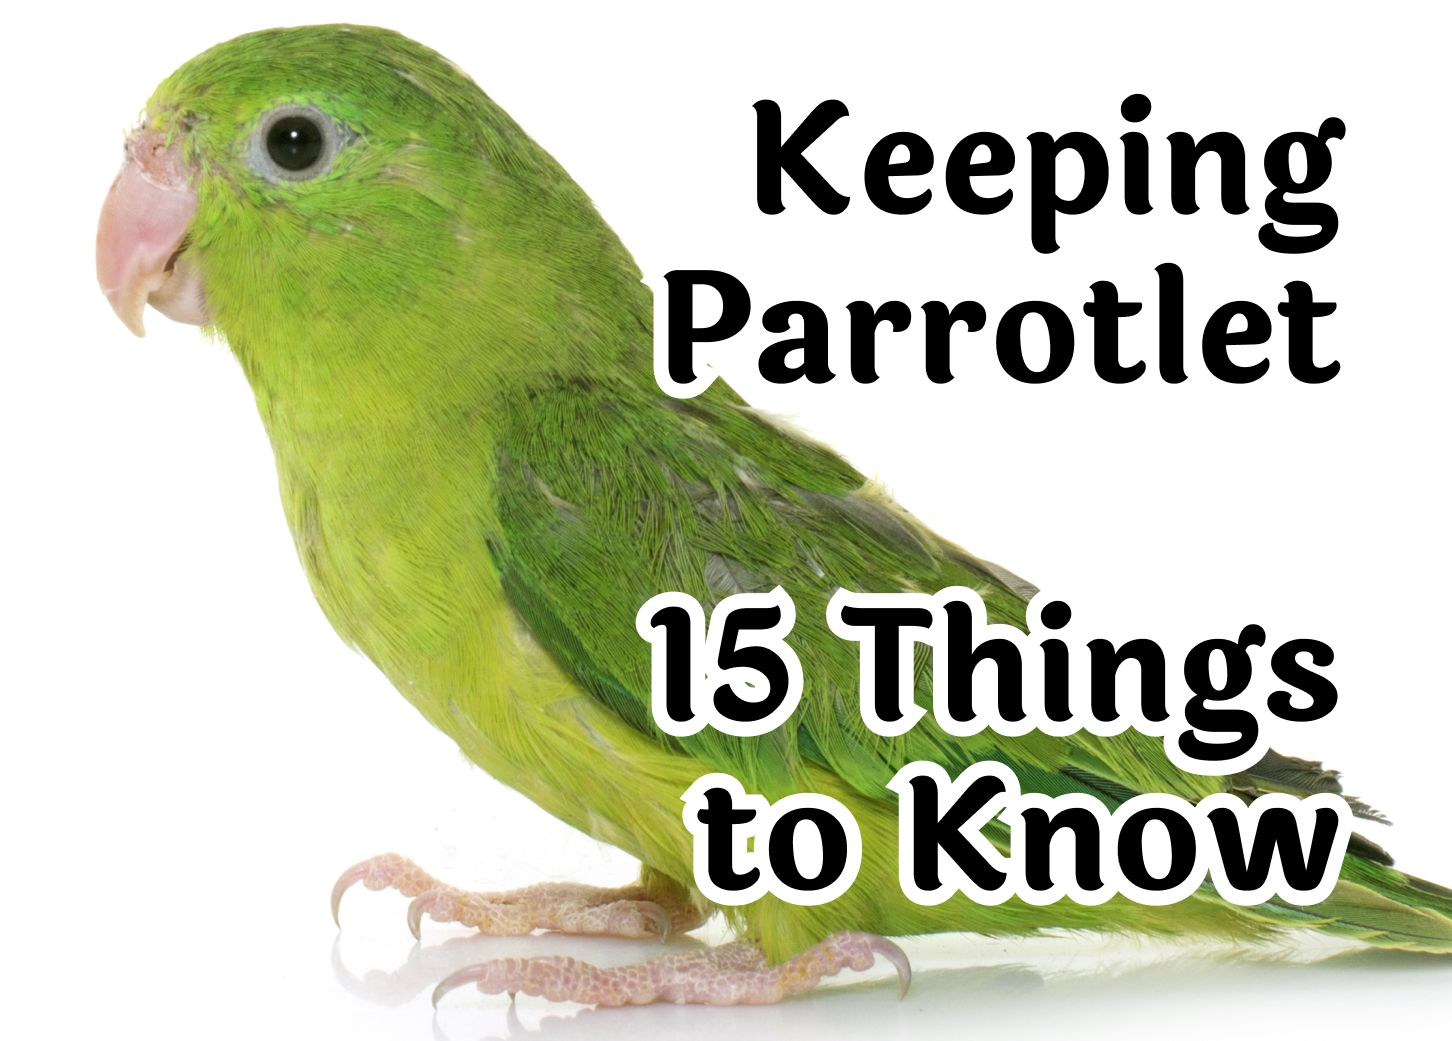 Keeping Parrotlet – 15 Things to Know